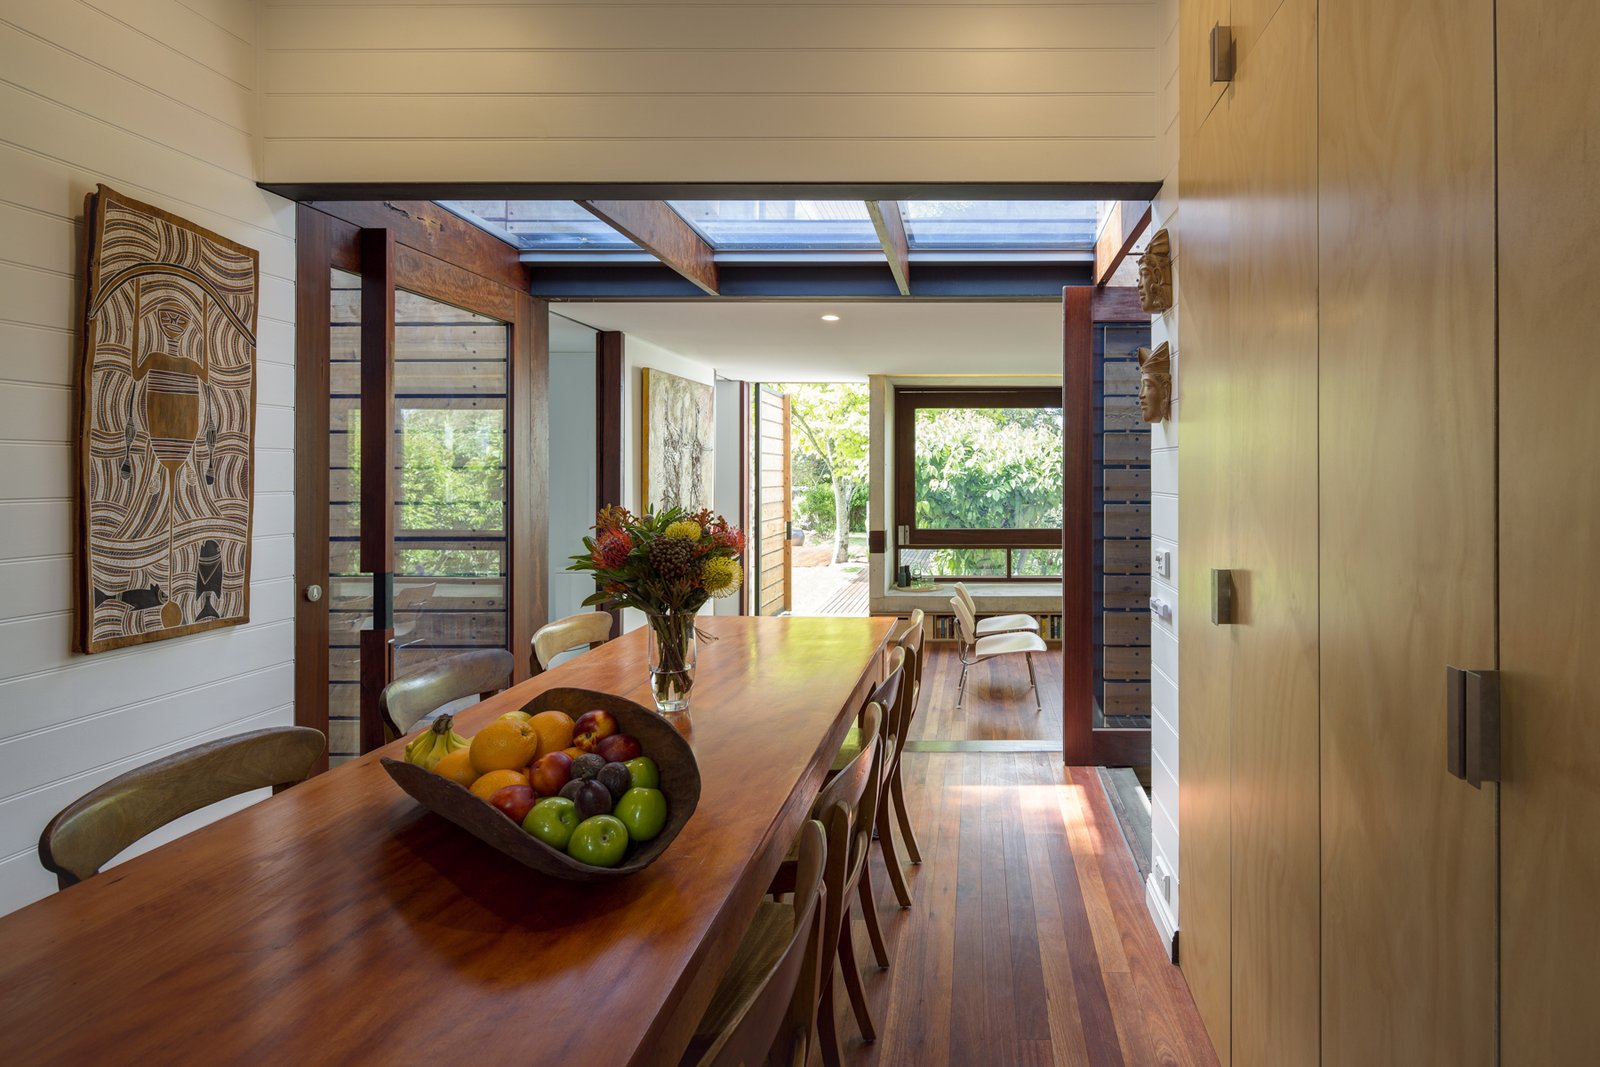 Dining Room, Table, Storage, and Medium Hardwood Floor Shifting volumes of living spaces  linked by restored industrial work bench.  Kihilla by James Thomas Barclay